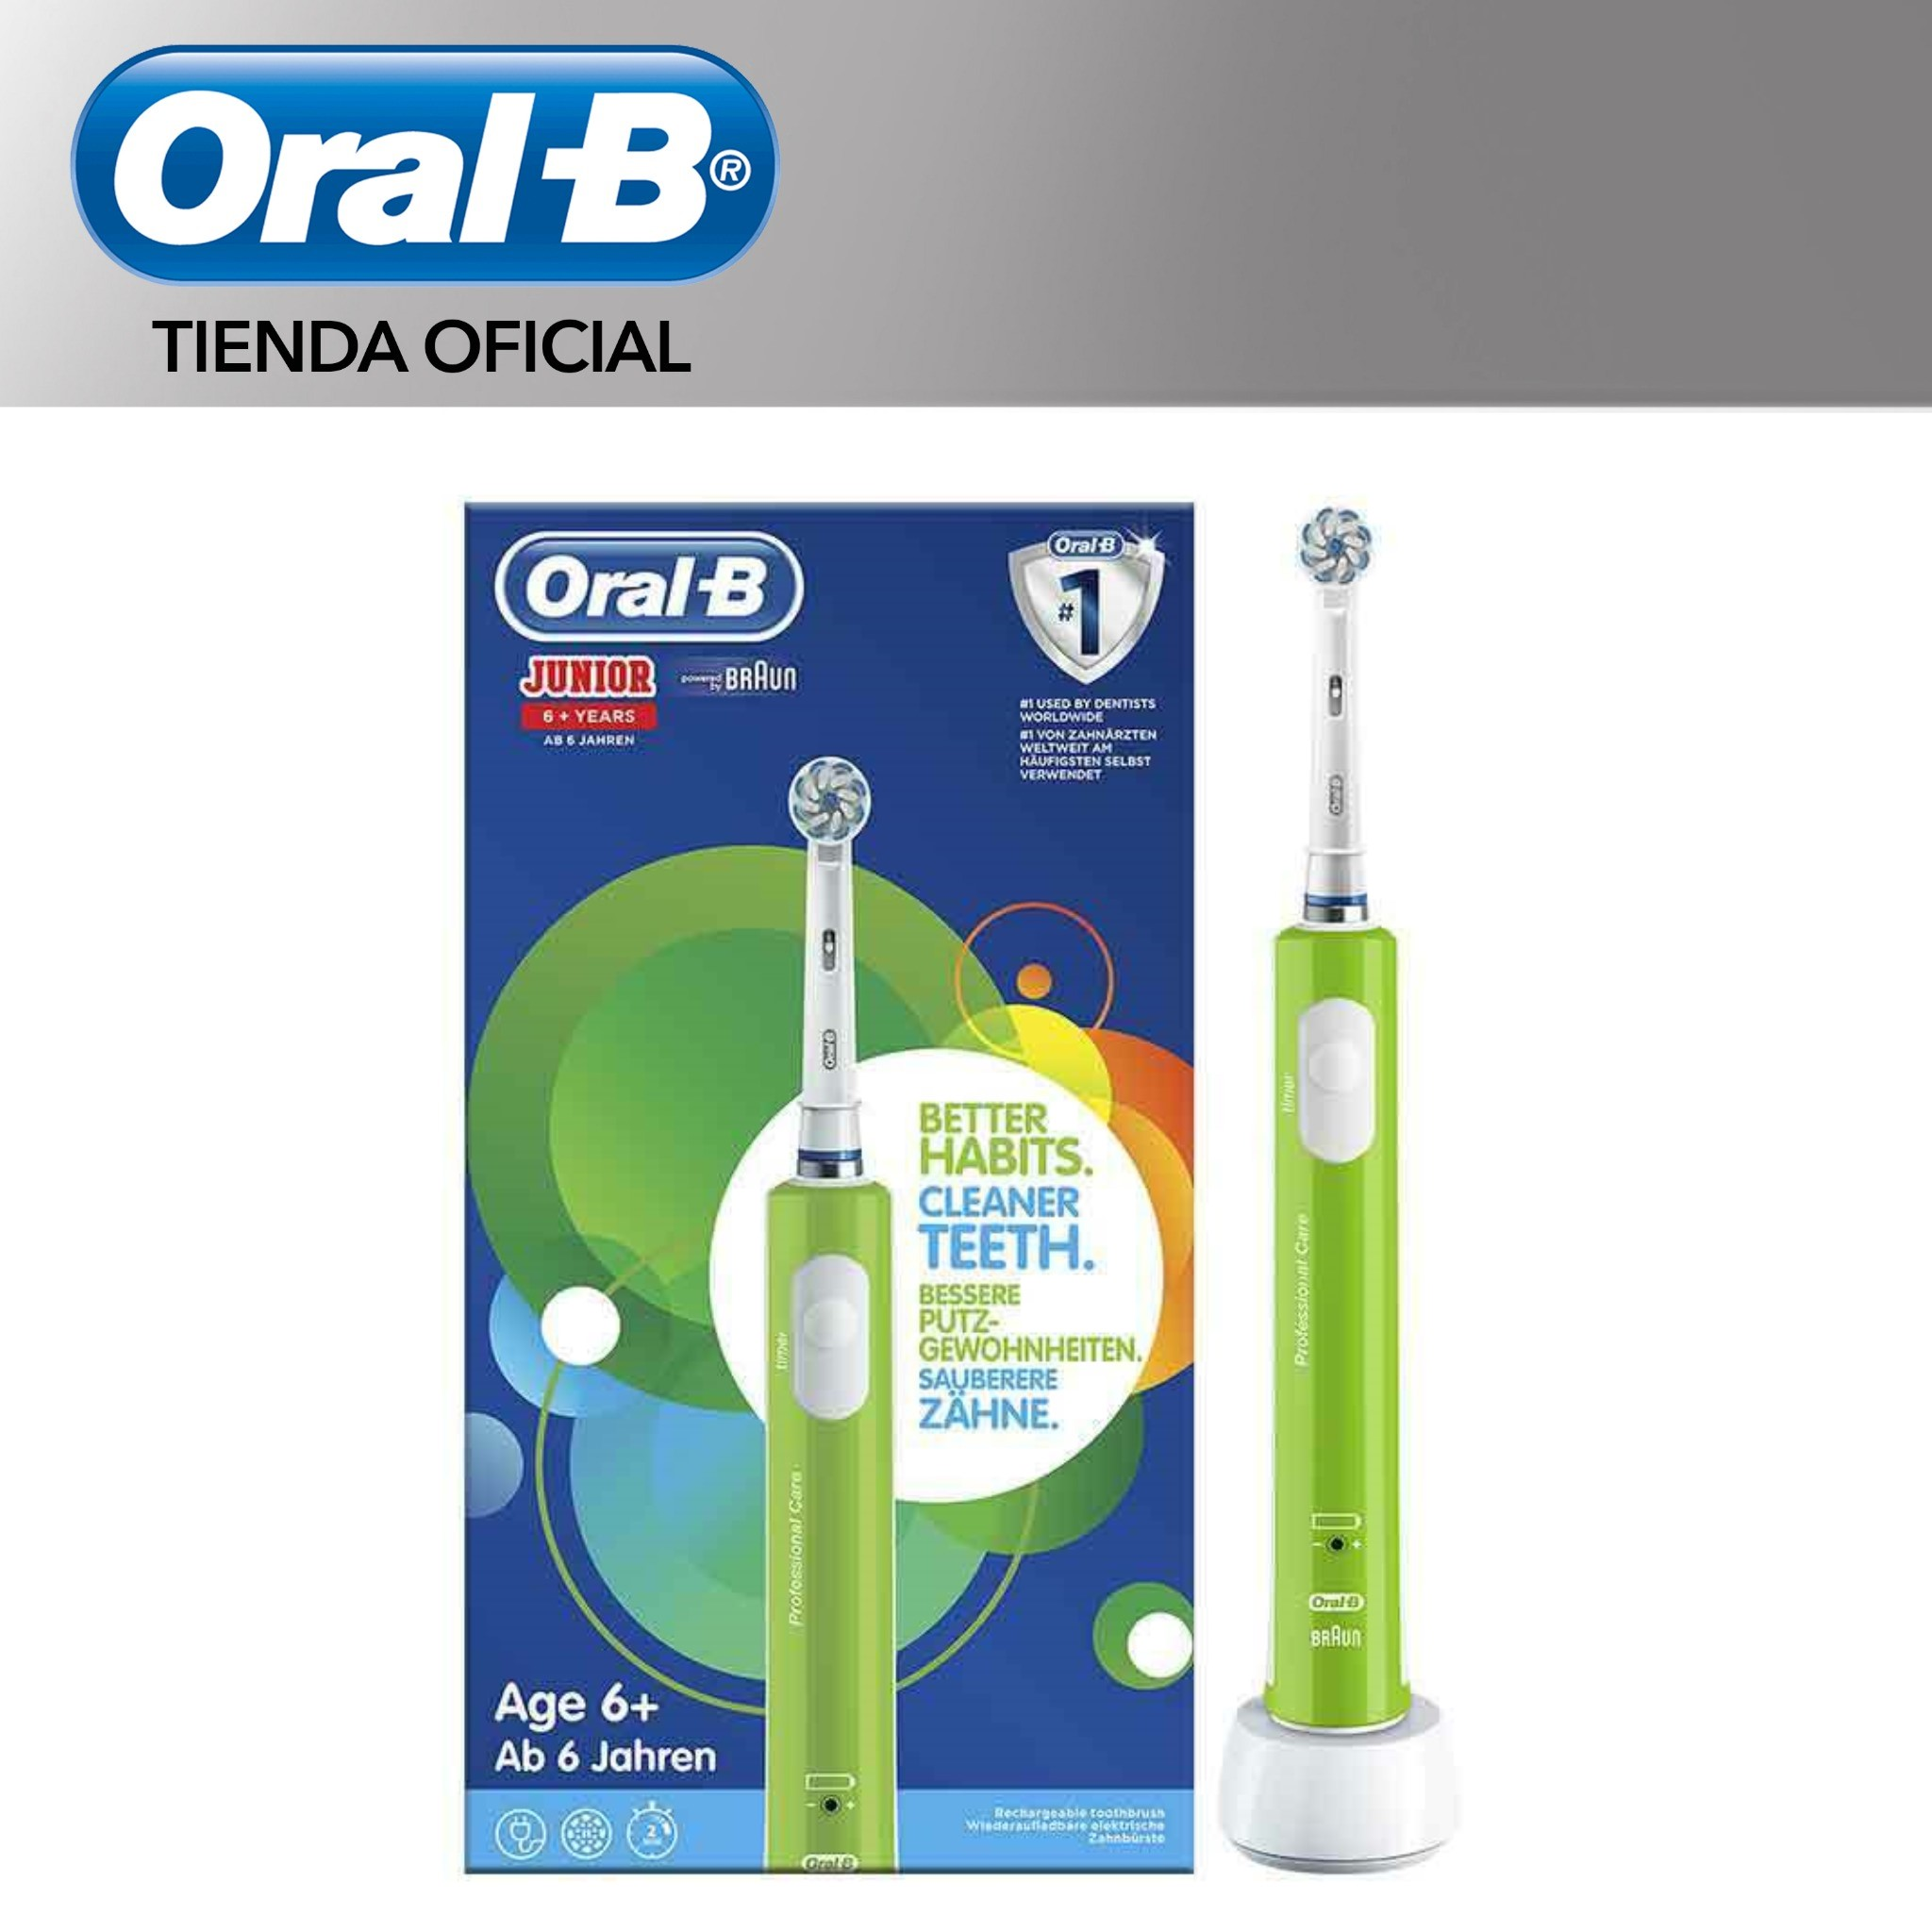 ORAL-B Junior order child electrics Toothbrush beginning year 6 Timer Filaments extrasuaves Cleaning 3D Green image